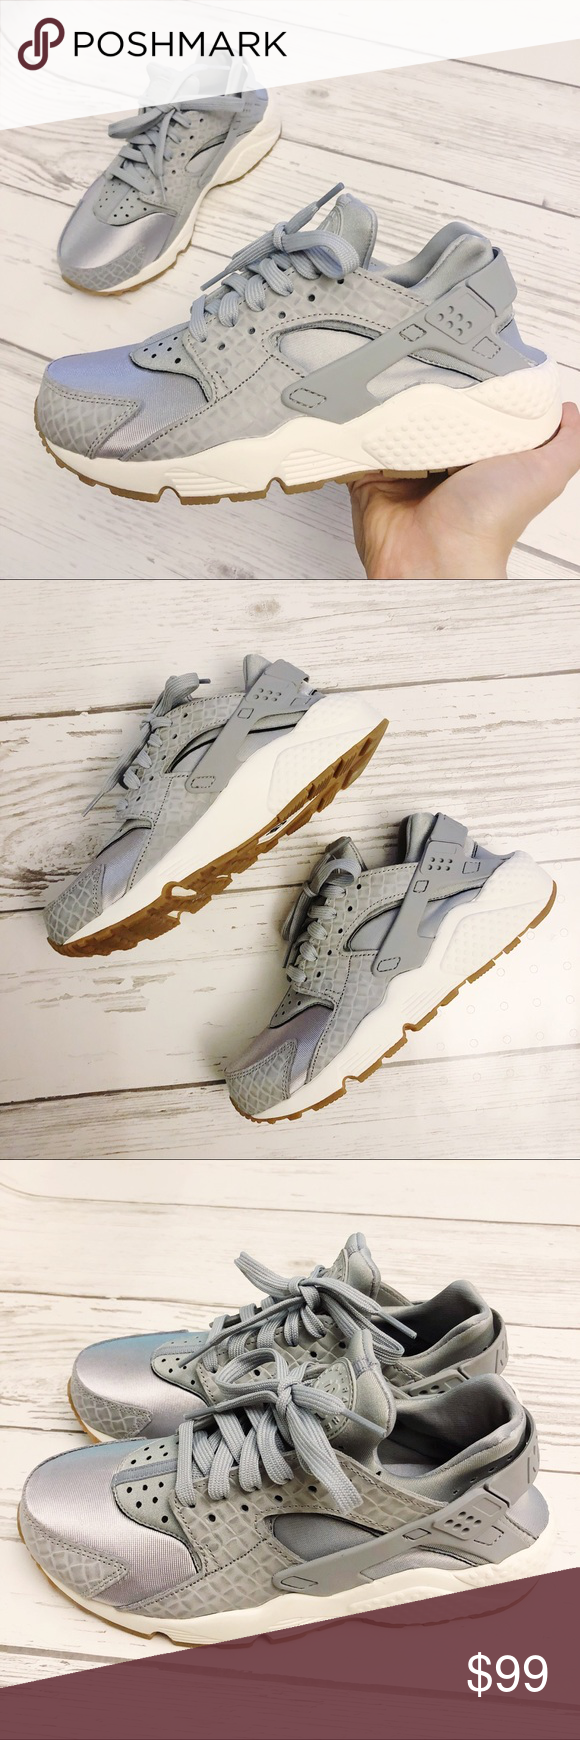 045a815efe5d NEW Nike Air Huarache Run Premium Wolf Grey sz 8 Nike WMNS Air Huarache Run  PRM